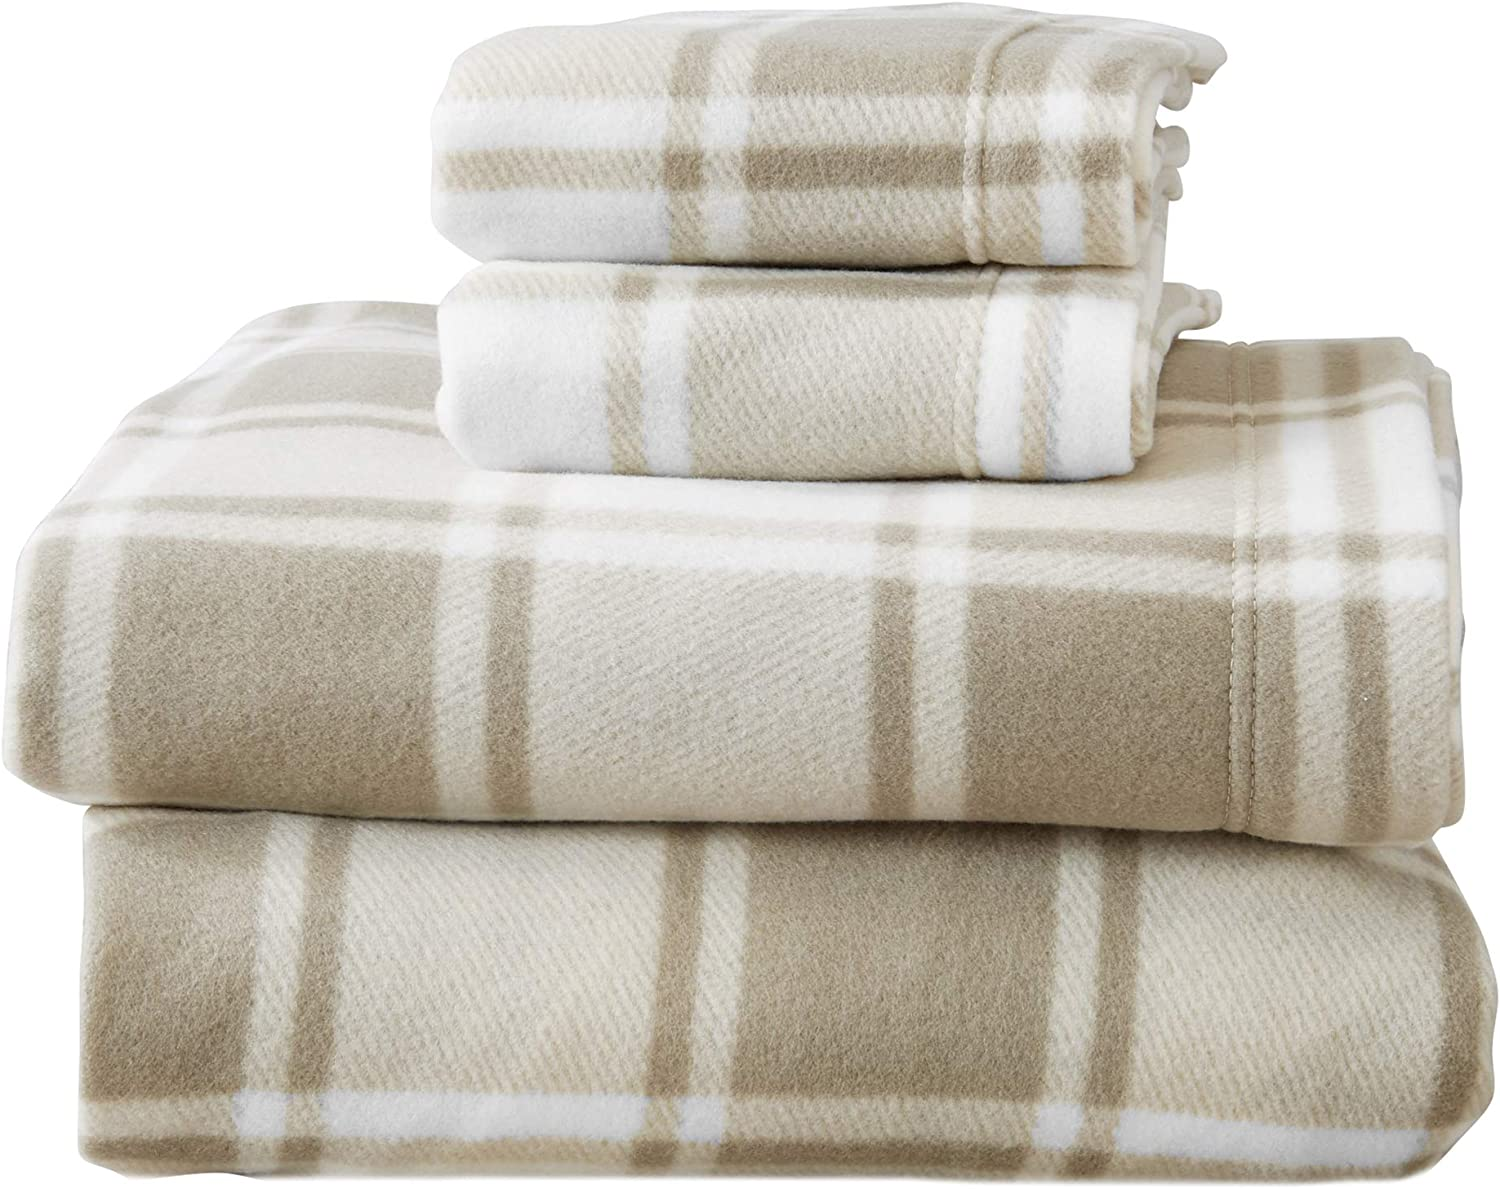 Super Soft Extra Plush Plaid Fleece Sheet Set. Cozy, Warm, Durable, Smooth, Breathable Winter Sheets with Plaid Pattern. Dara Collection by Great Bay Home Brand. (Full, Taupe)